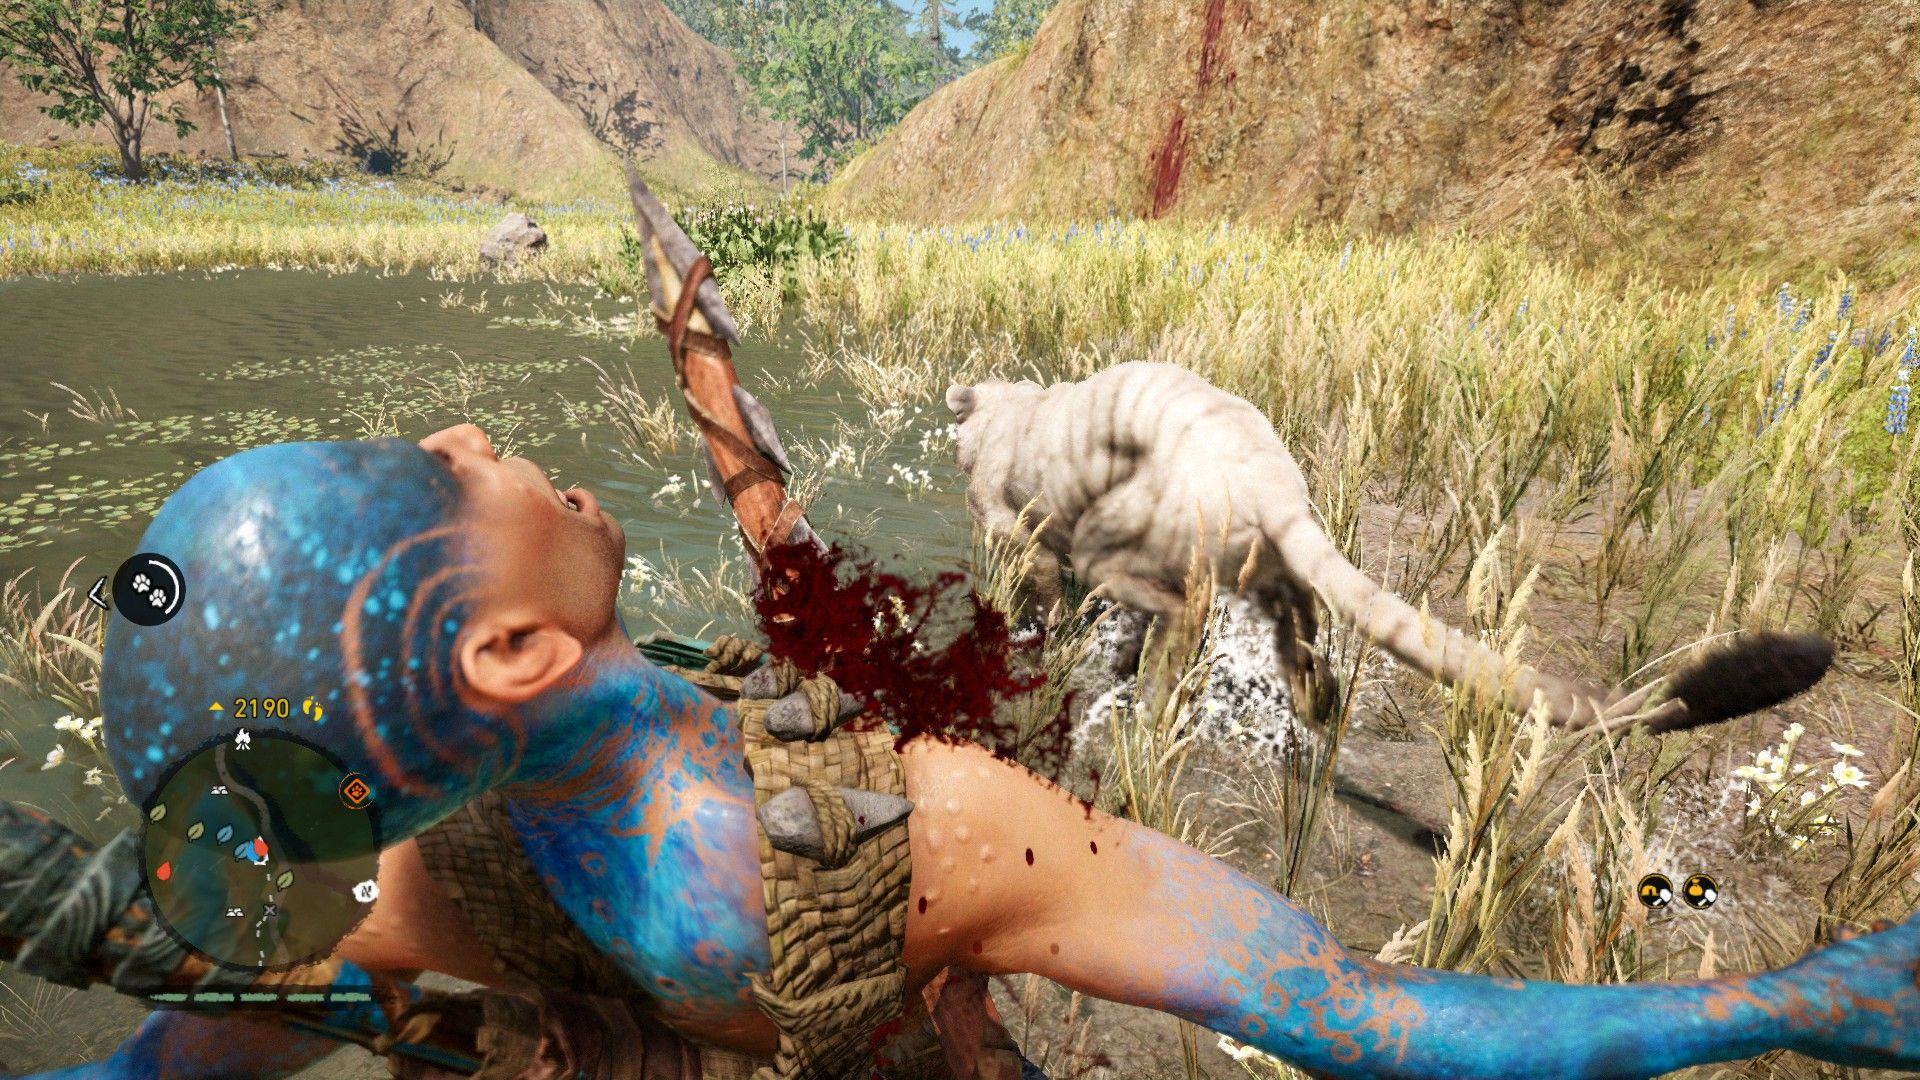 Far Cry Primal Screenshots Image 18437 New Game Network